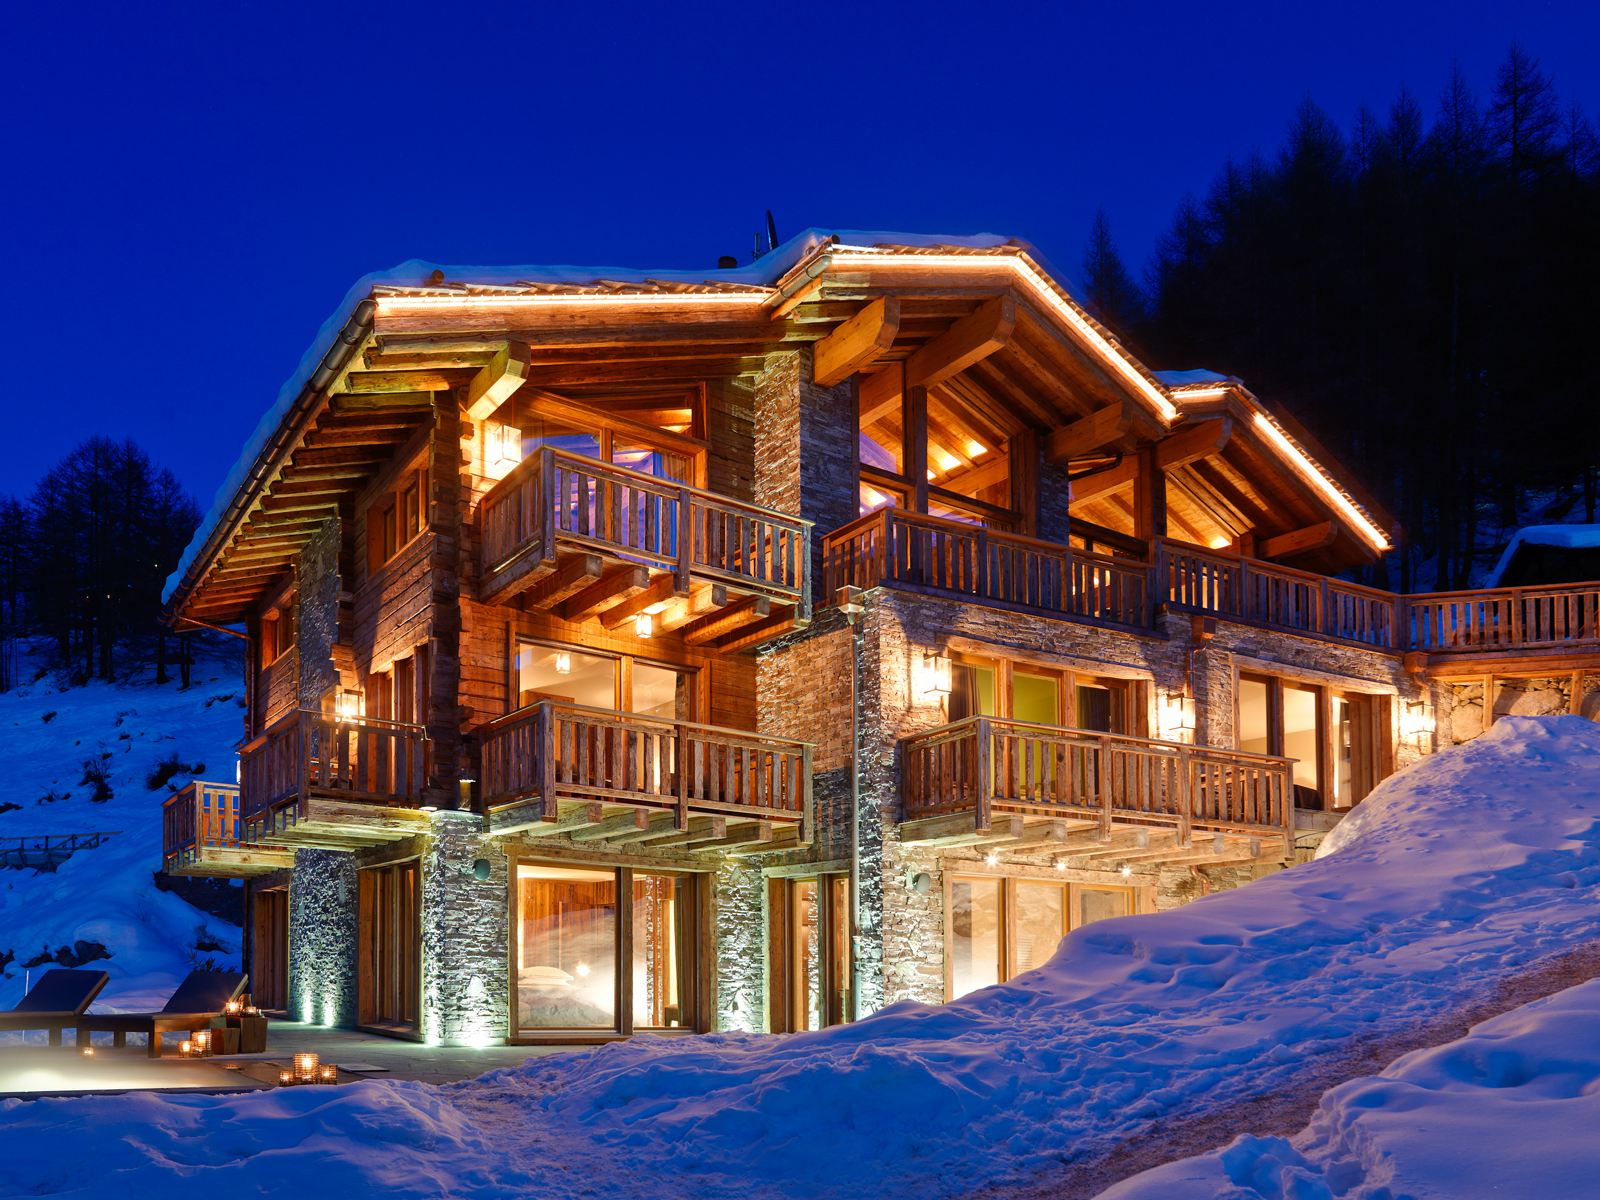 Luxuty-Chalets_cr_Elysian-Collection-Gmbh_Barry-Murphey-2.jpg